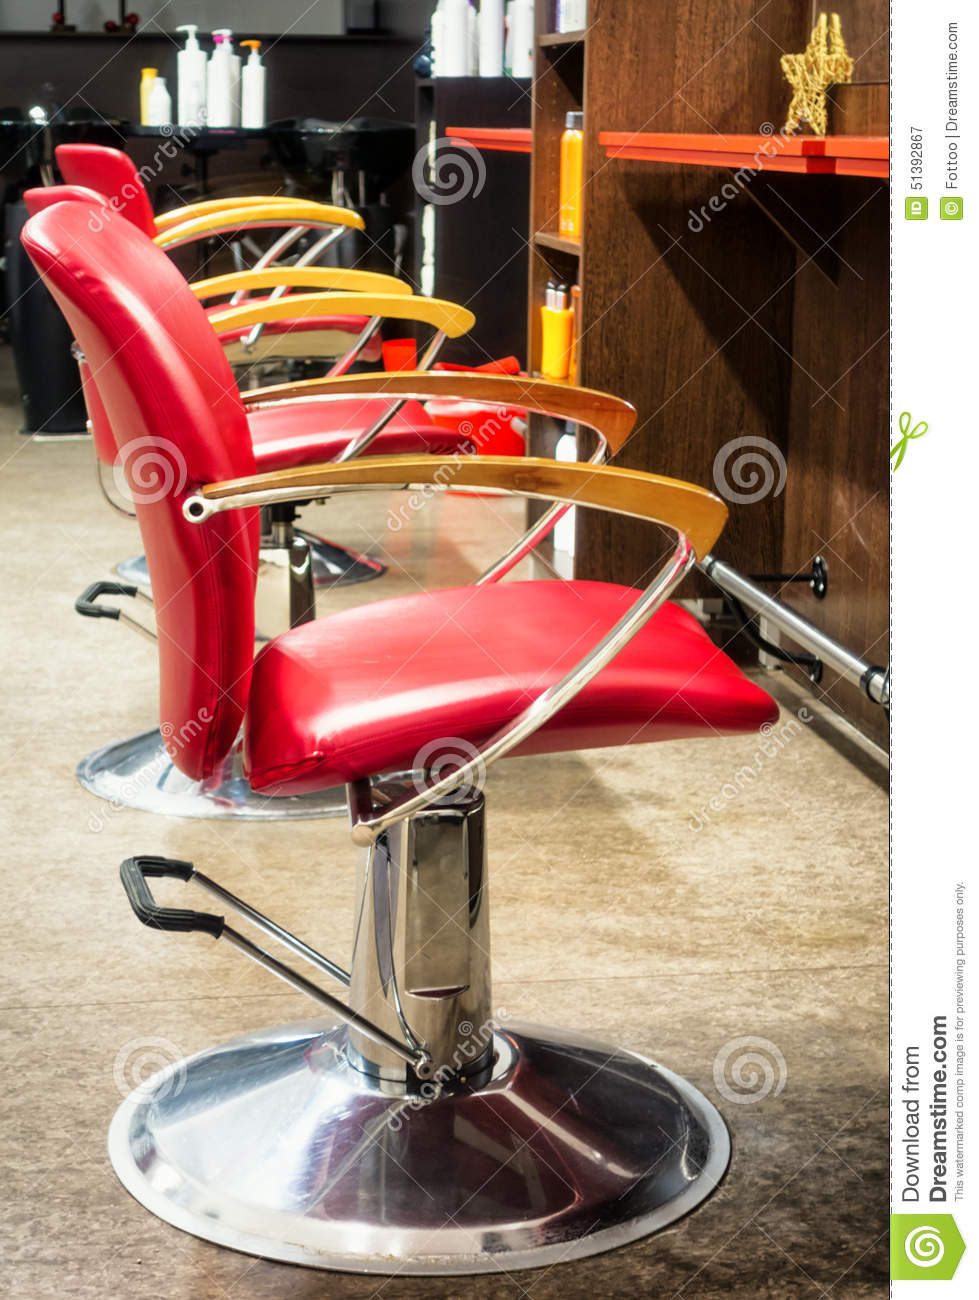 Old barber shop chairs - Barber Chairs Old Shop